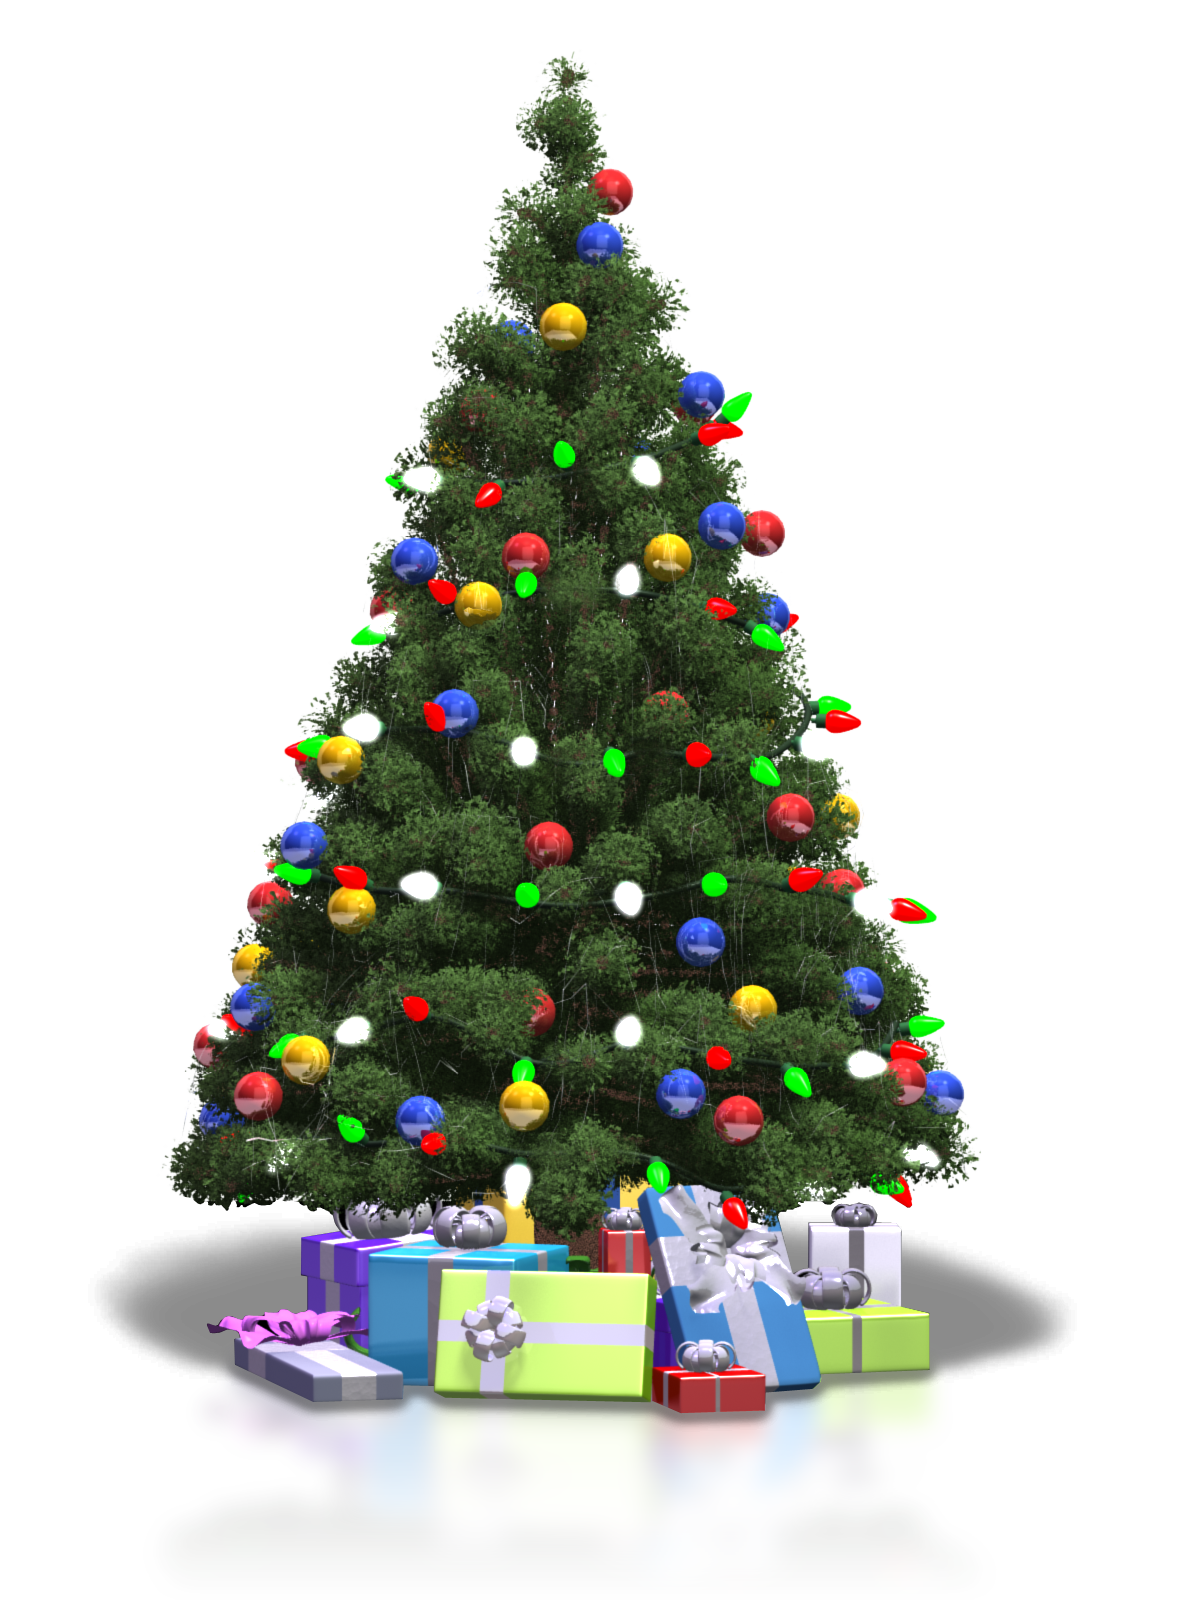 Christmas Trees Pictures Of Christmas Trees Christmas Tree Template Ribbon On Christmas Tree Christmas Tree Coloring Page